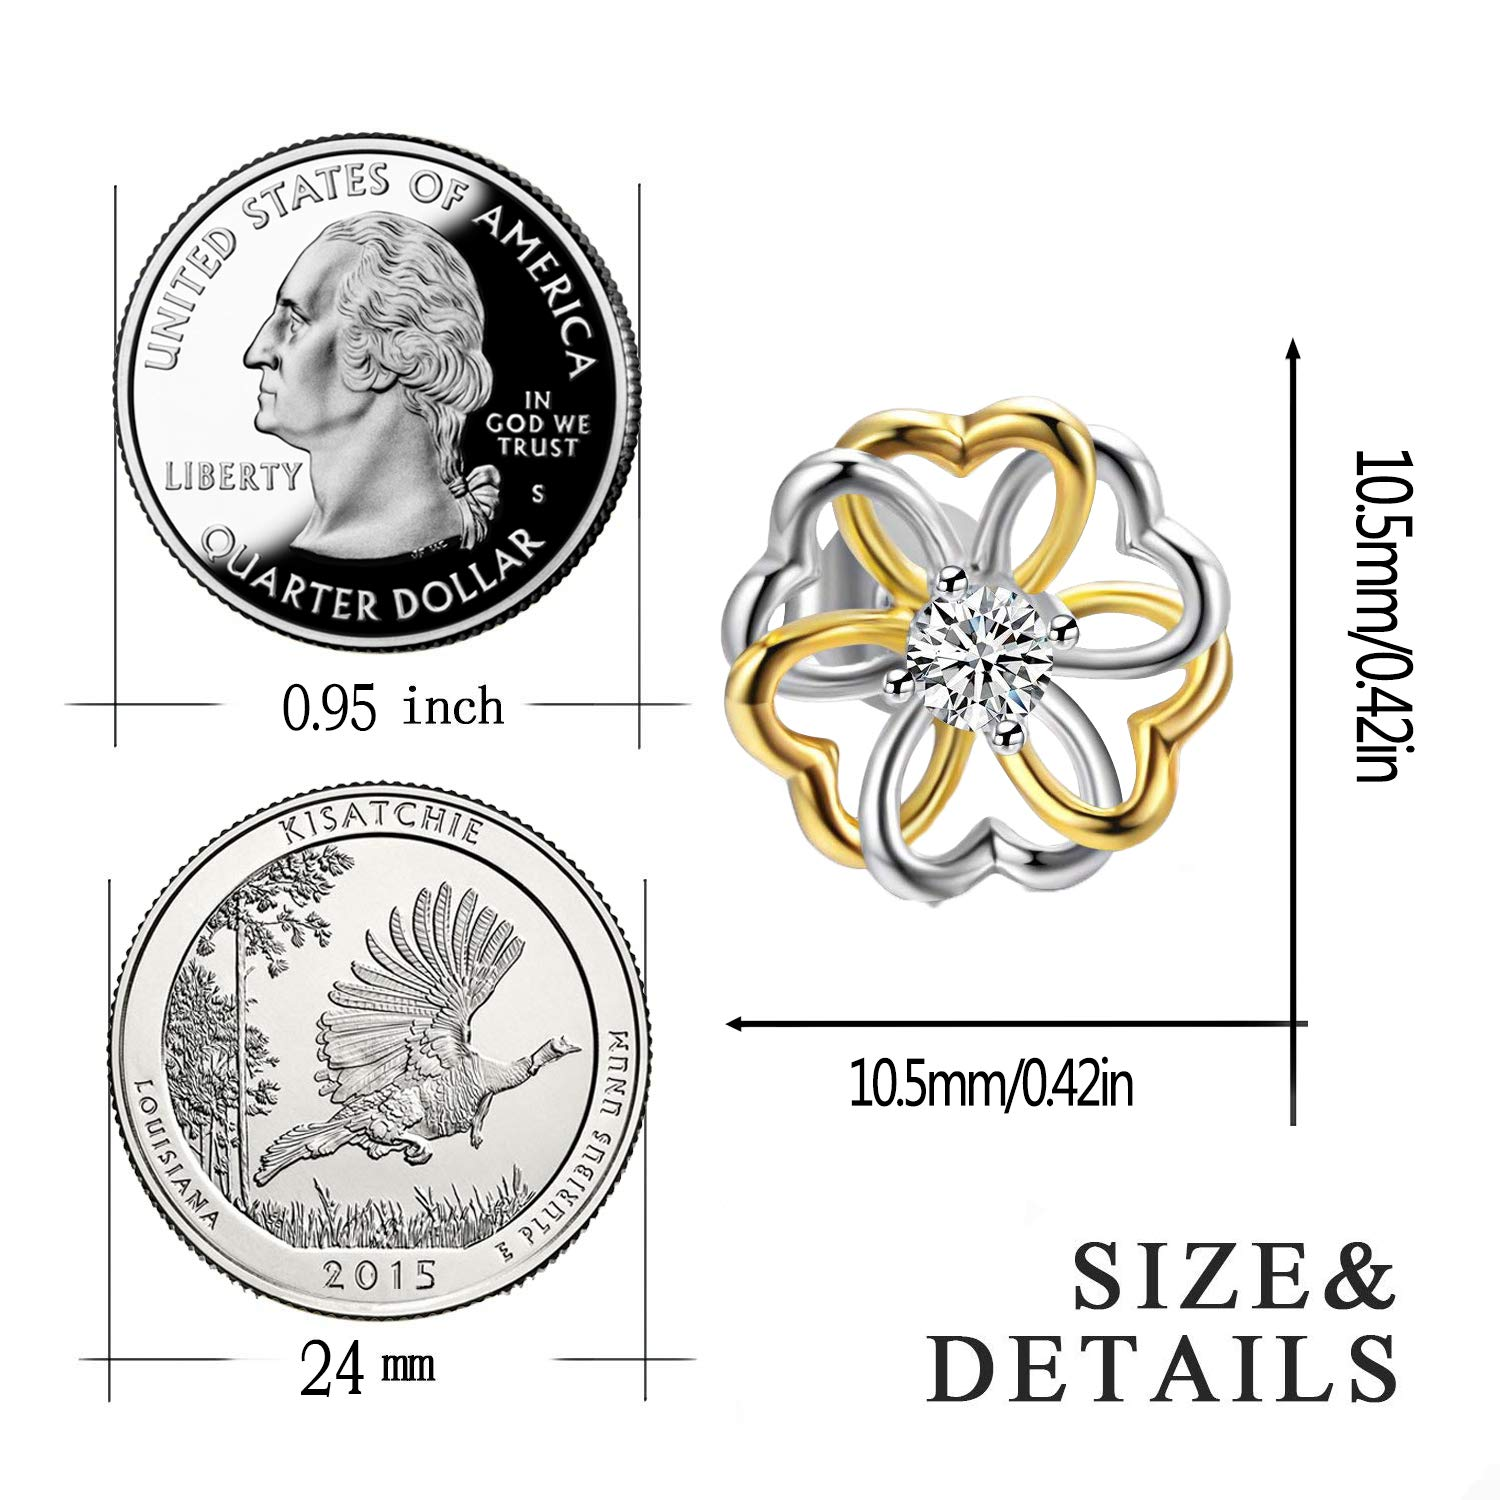 IminiJewelry Love Heart Sterling Silver Gold Flower Cubic Zirconia Stud Earrings for Women Girls Hypoallergenic Fashion CZ Post Gifts for Christmas